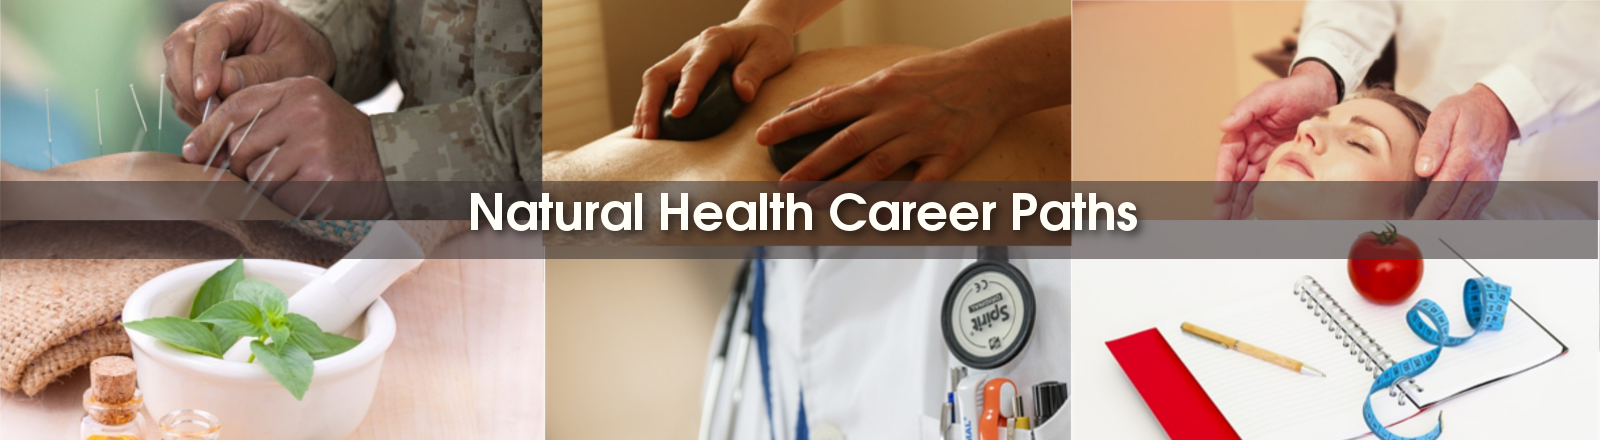 career paths natural medicine